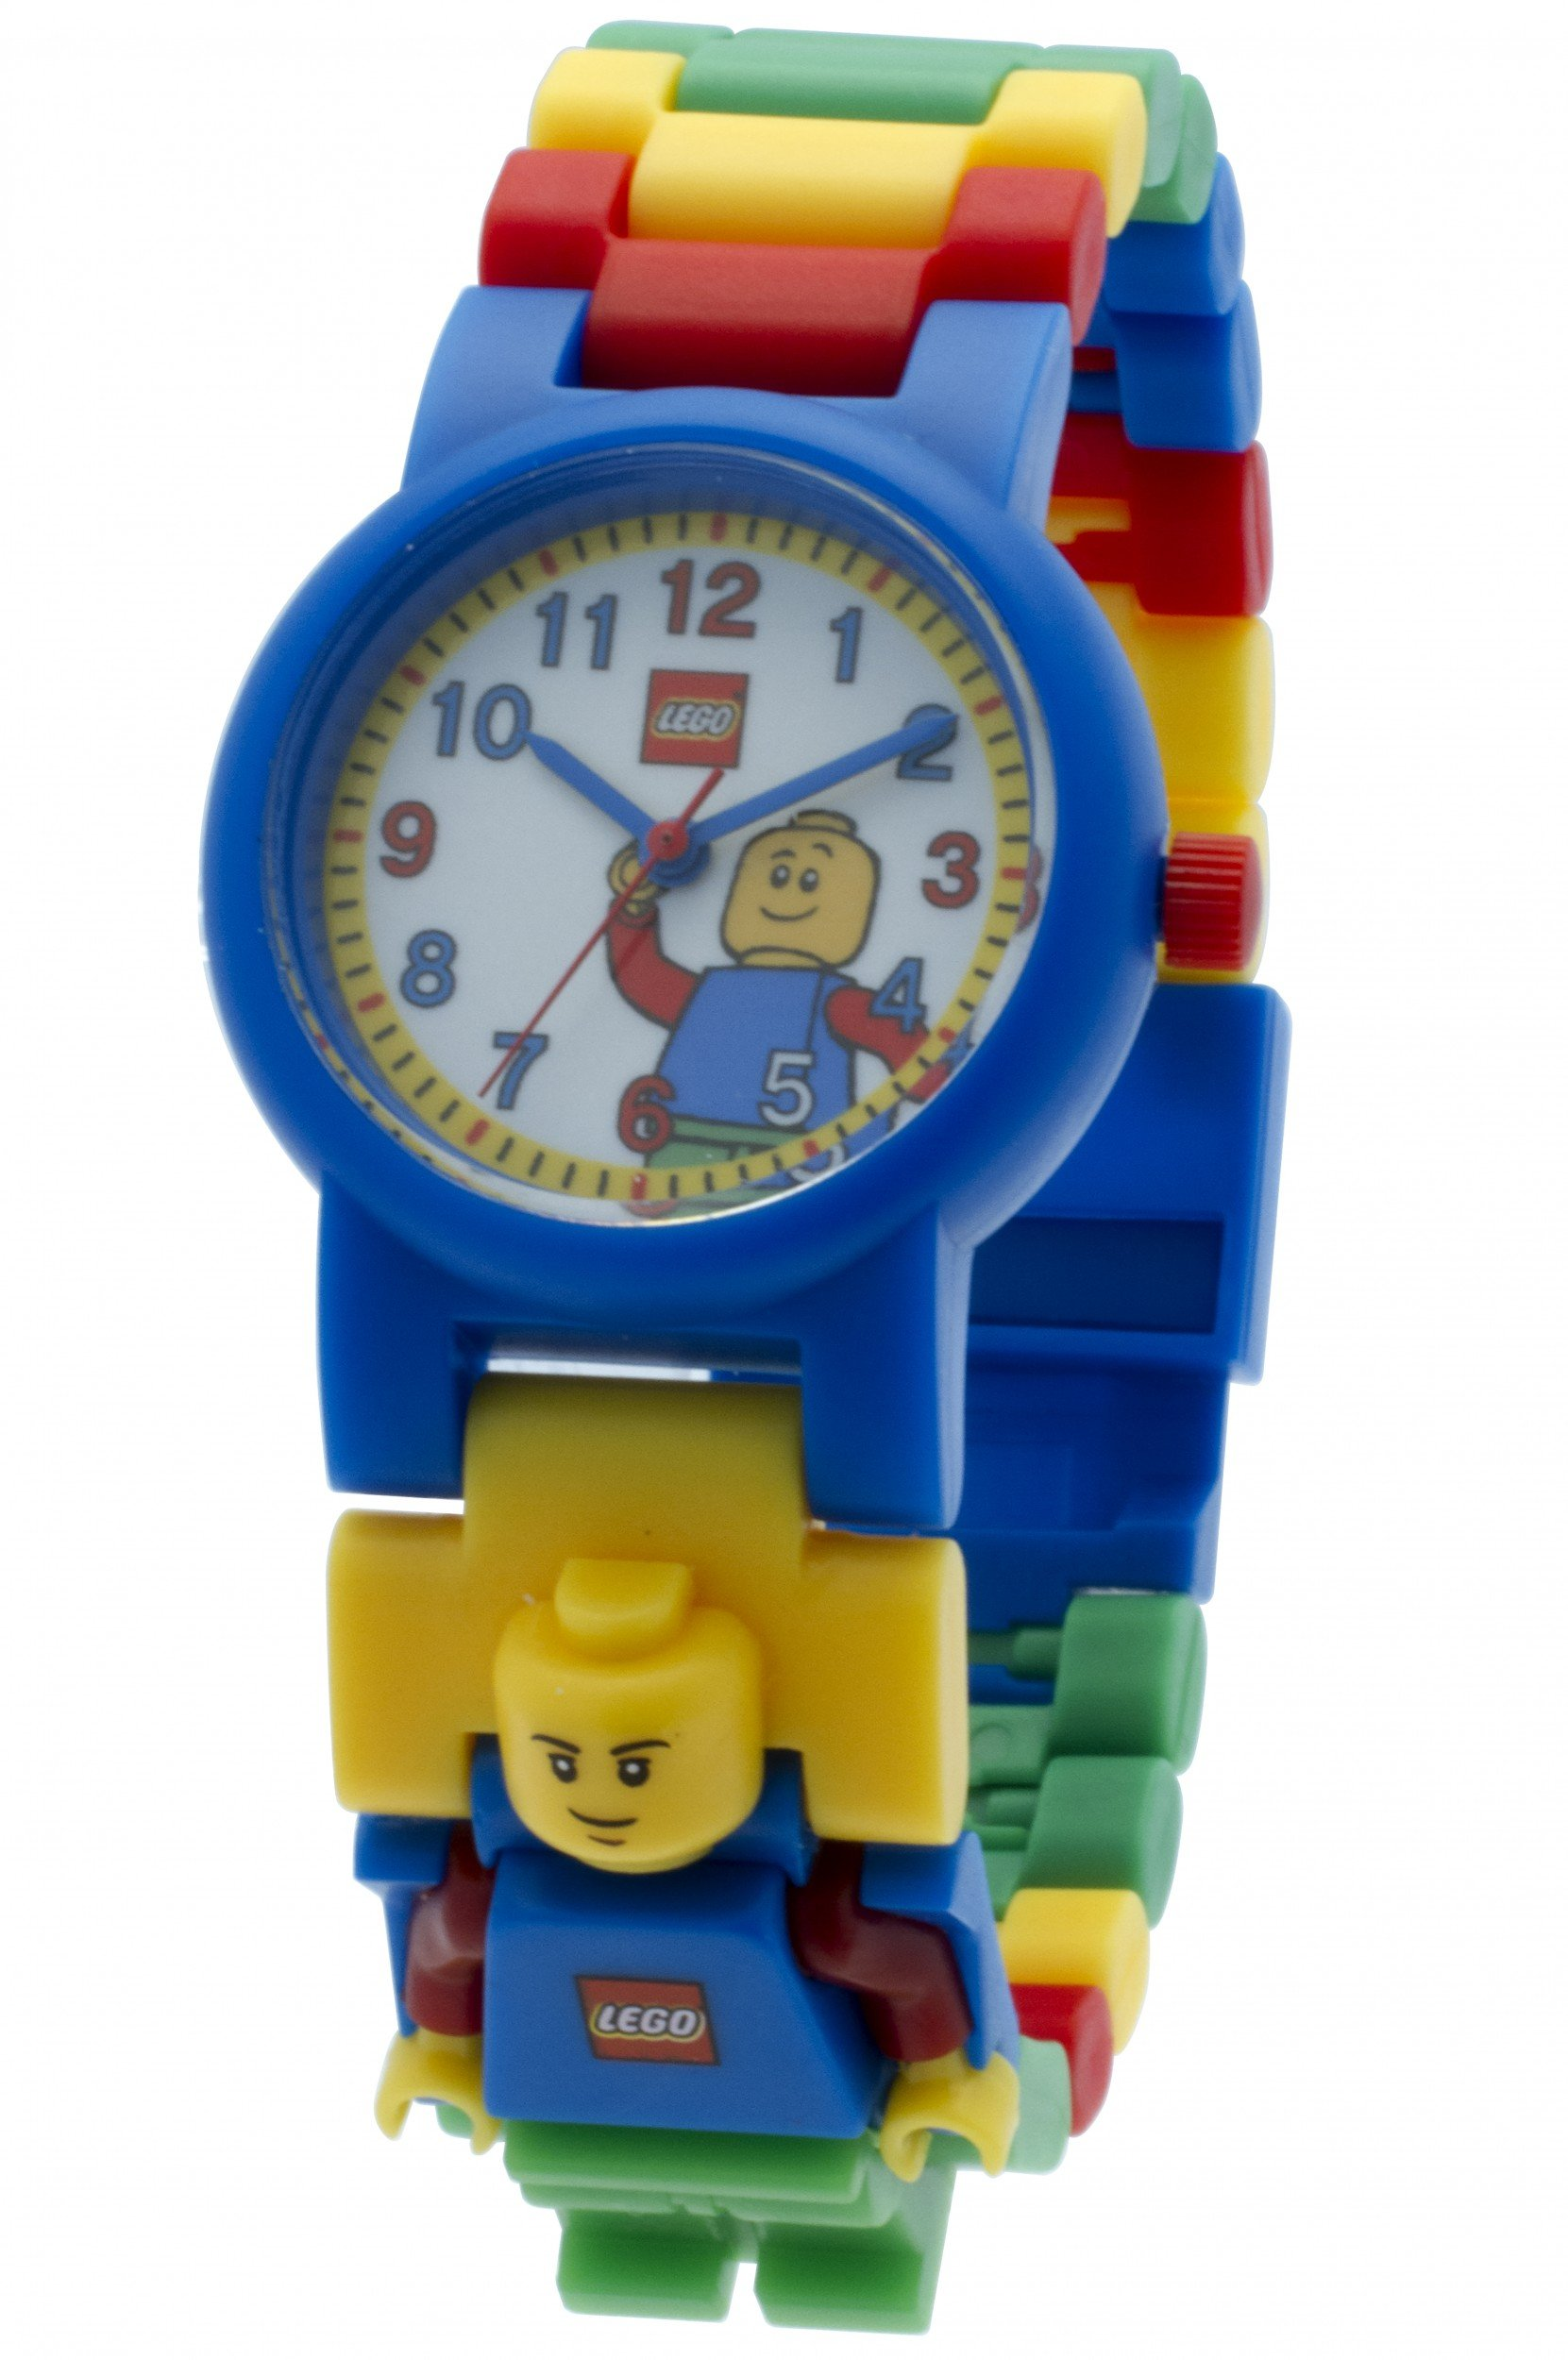 LEGO Classic 8020189 Kids Minifigure Link Buildable Watch | black/yellow | plastic | 25mm case diameter| analog quartz | boy girl | official